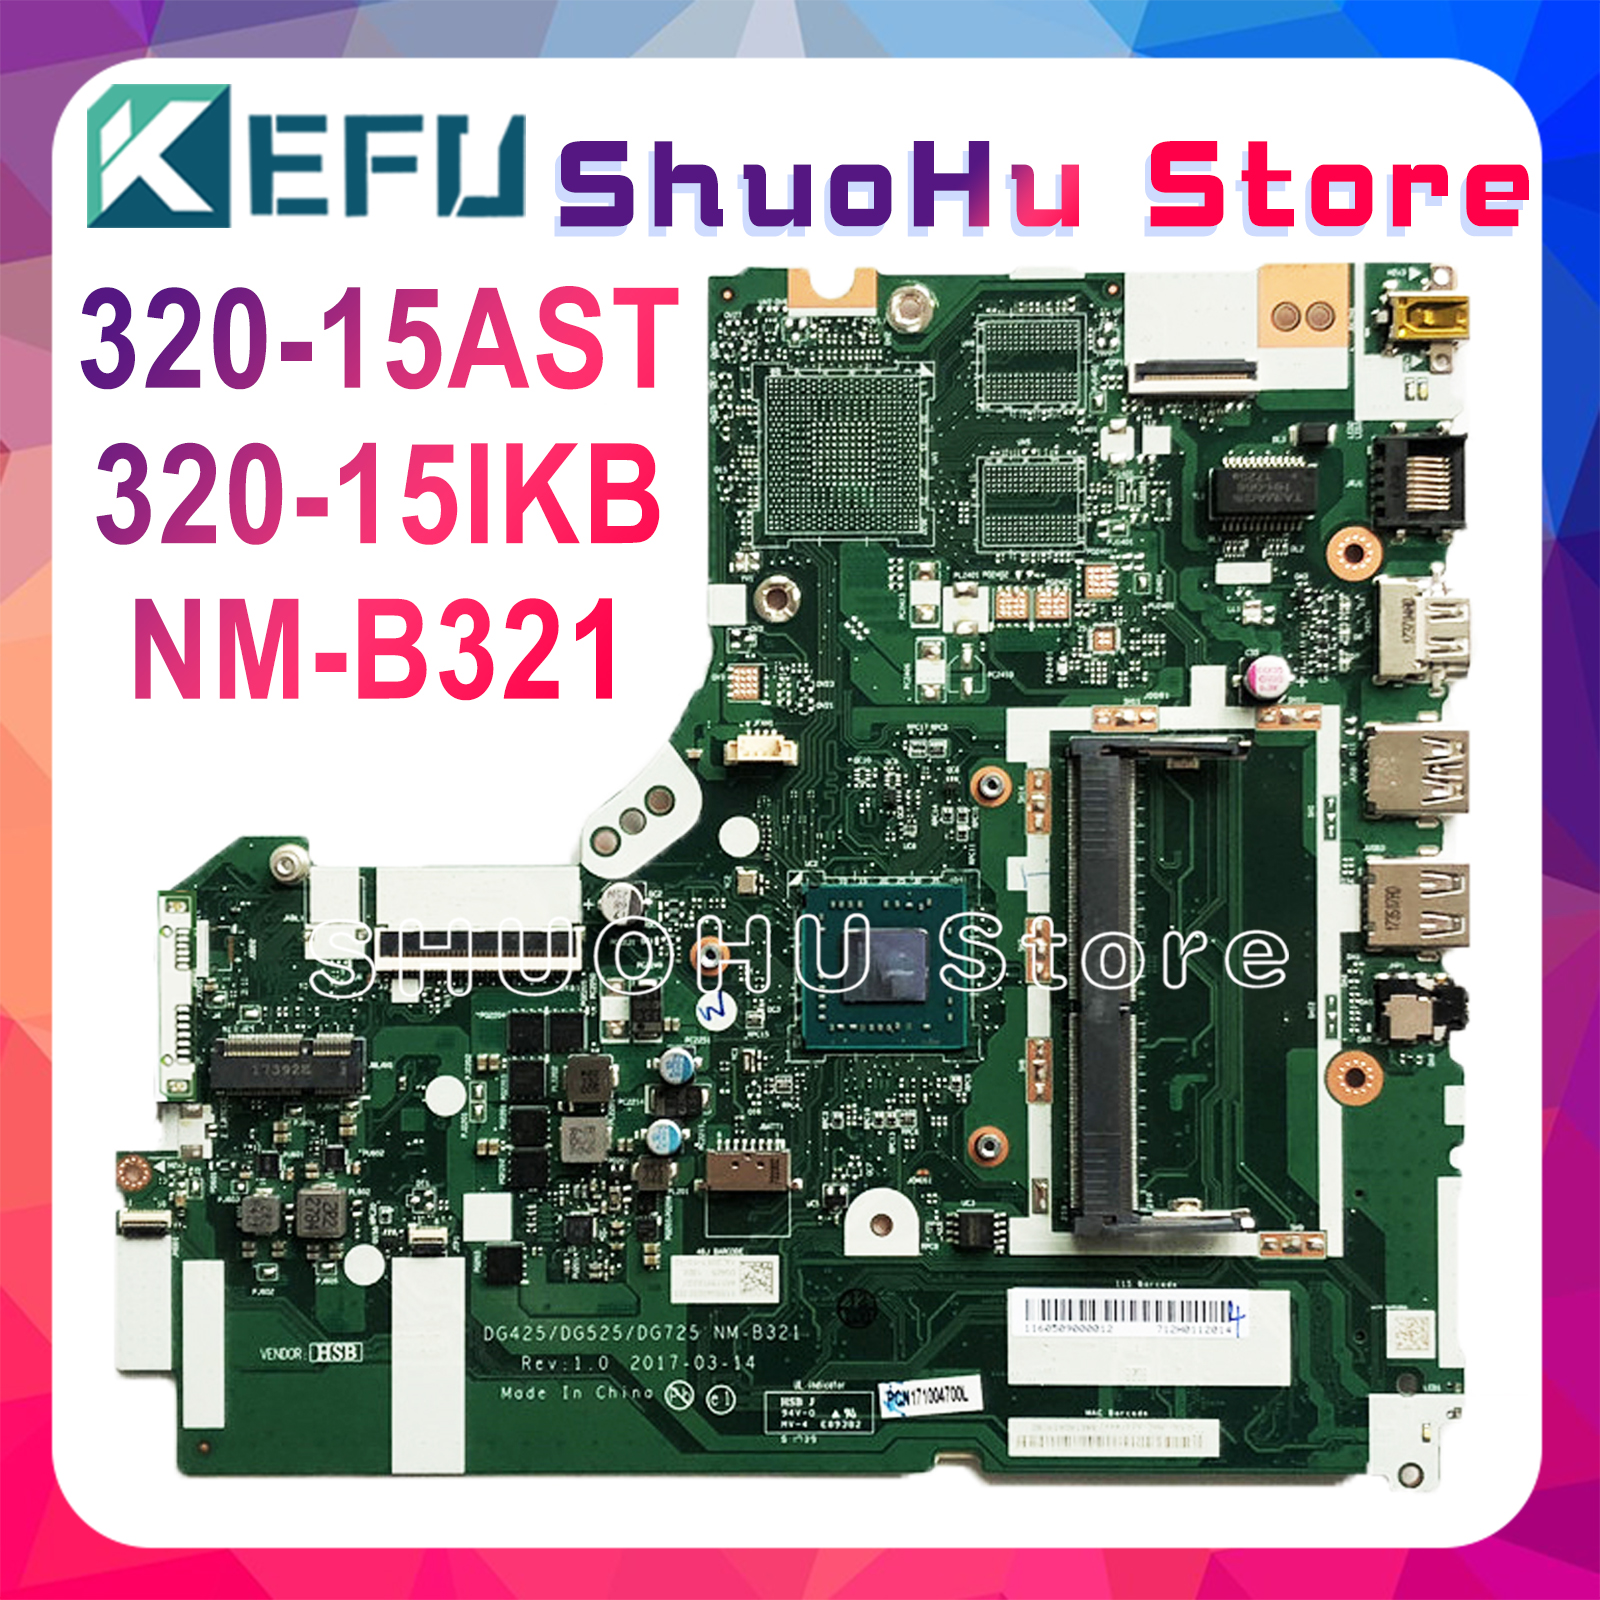 KEFU NM-B321 <font><b>motherboard</b></font> for <font><b>Lenovo</b></font> <font><b>320</b></font>-15IKB <font><b>320</b></font>-15AST <font><b>motherboard</b></font> DG425 DG525 DG725 NM-B321 A9-AM9420 CPU Test original work image